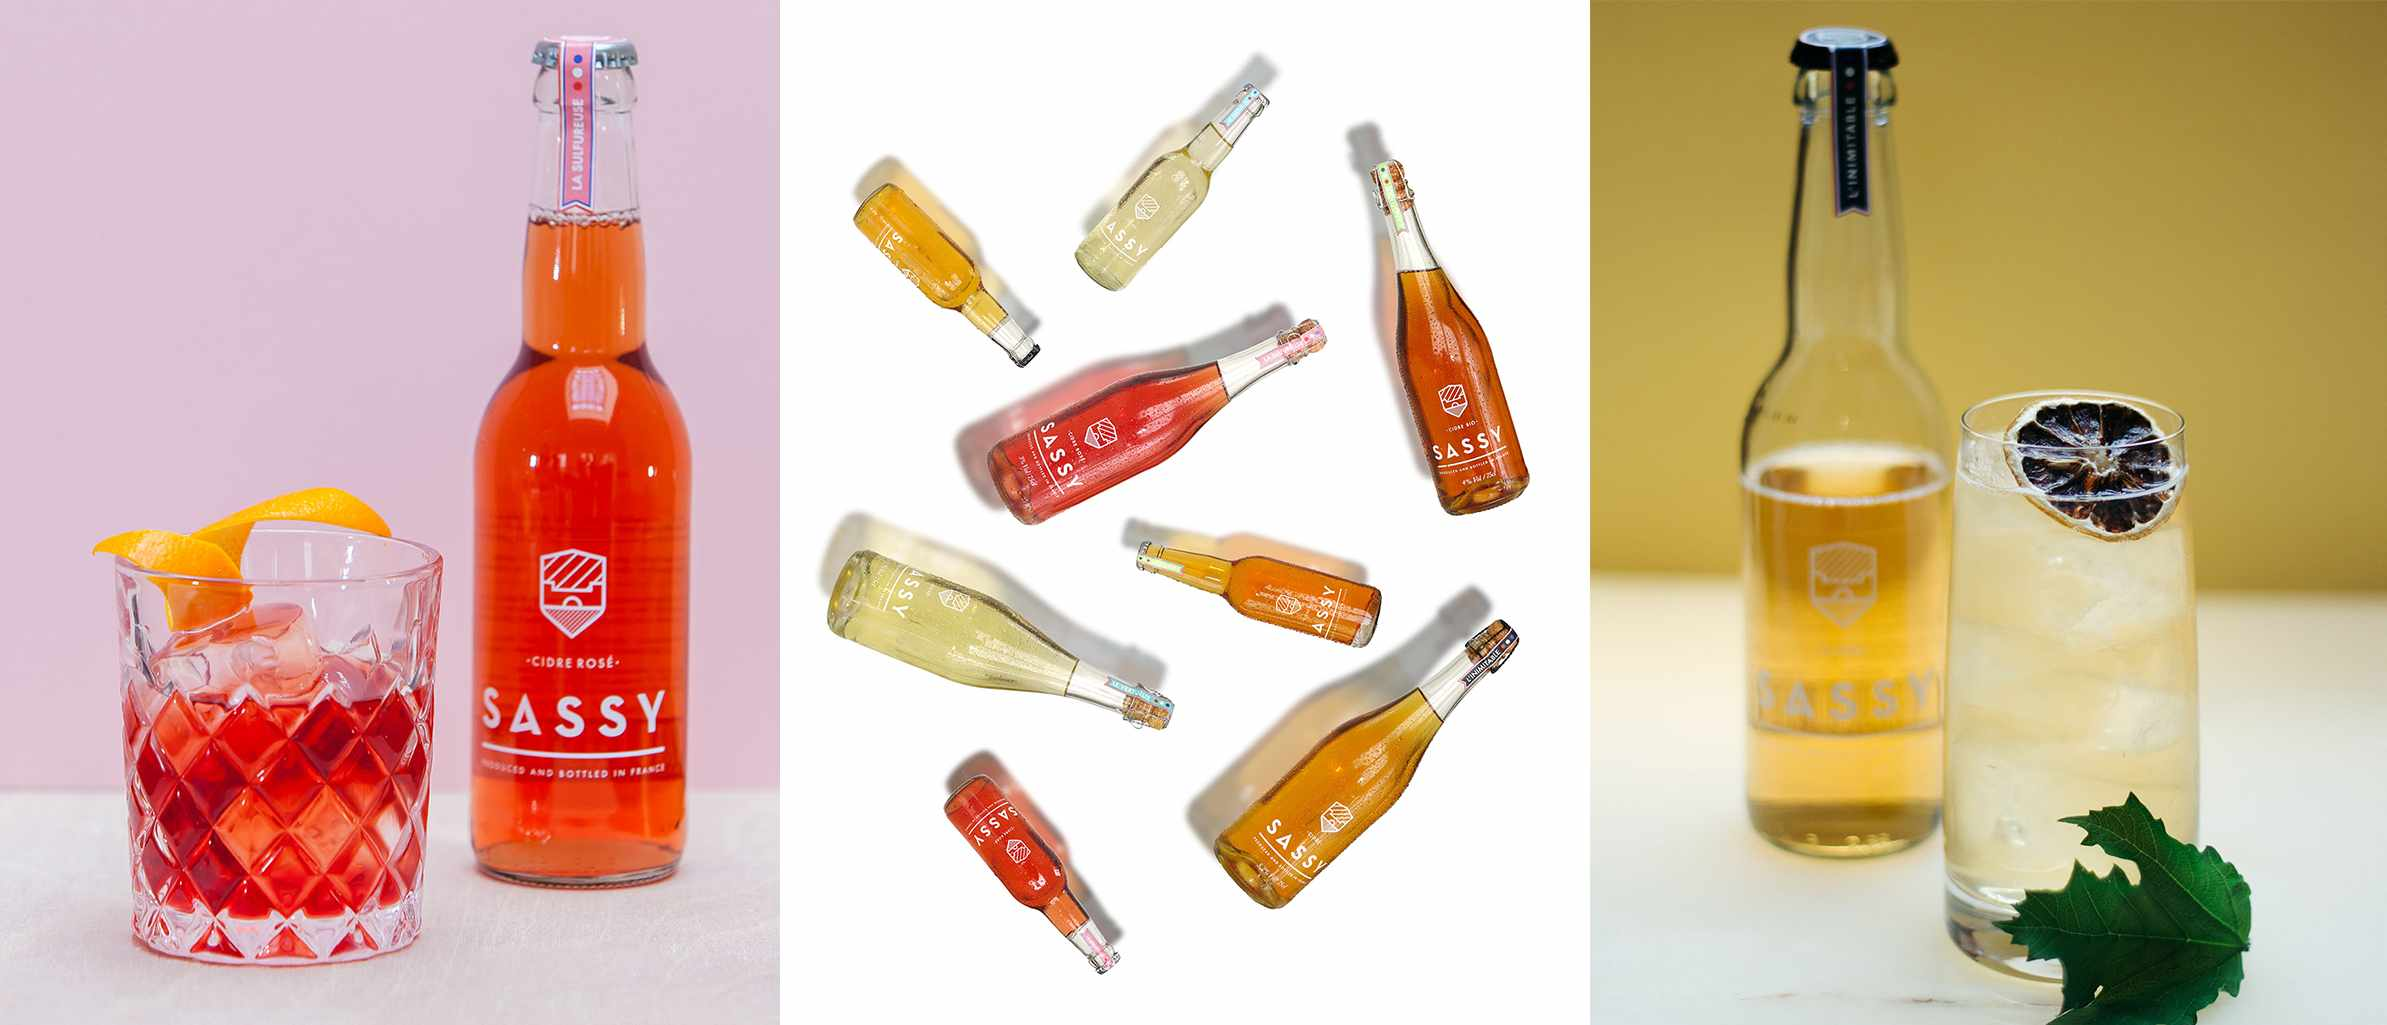 Three images. The first is of a bottle of Sassy cider with a cocktail next to it, the second is a selection of bottles and the third is a bottle with a cocktail next to it